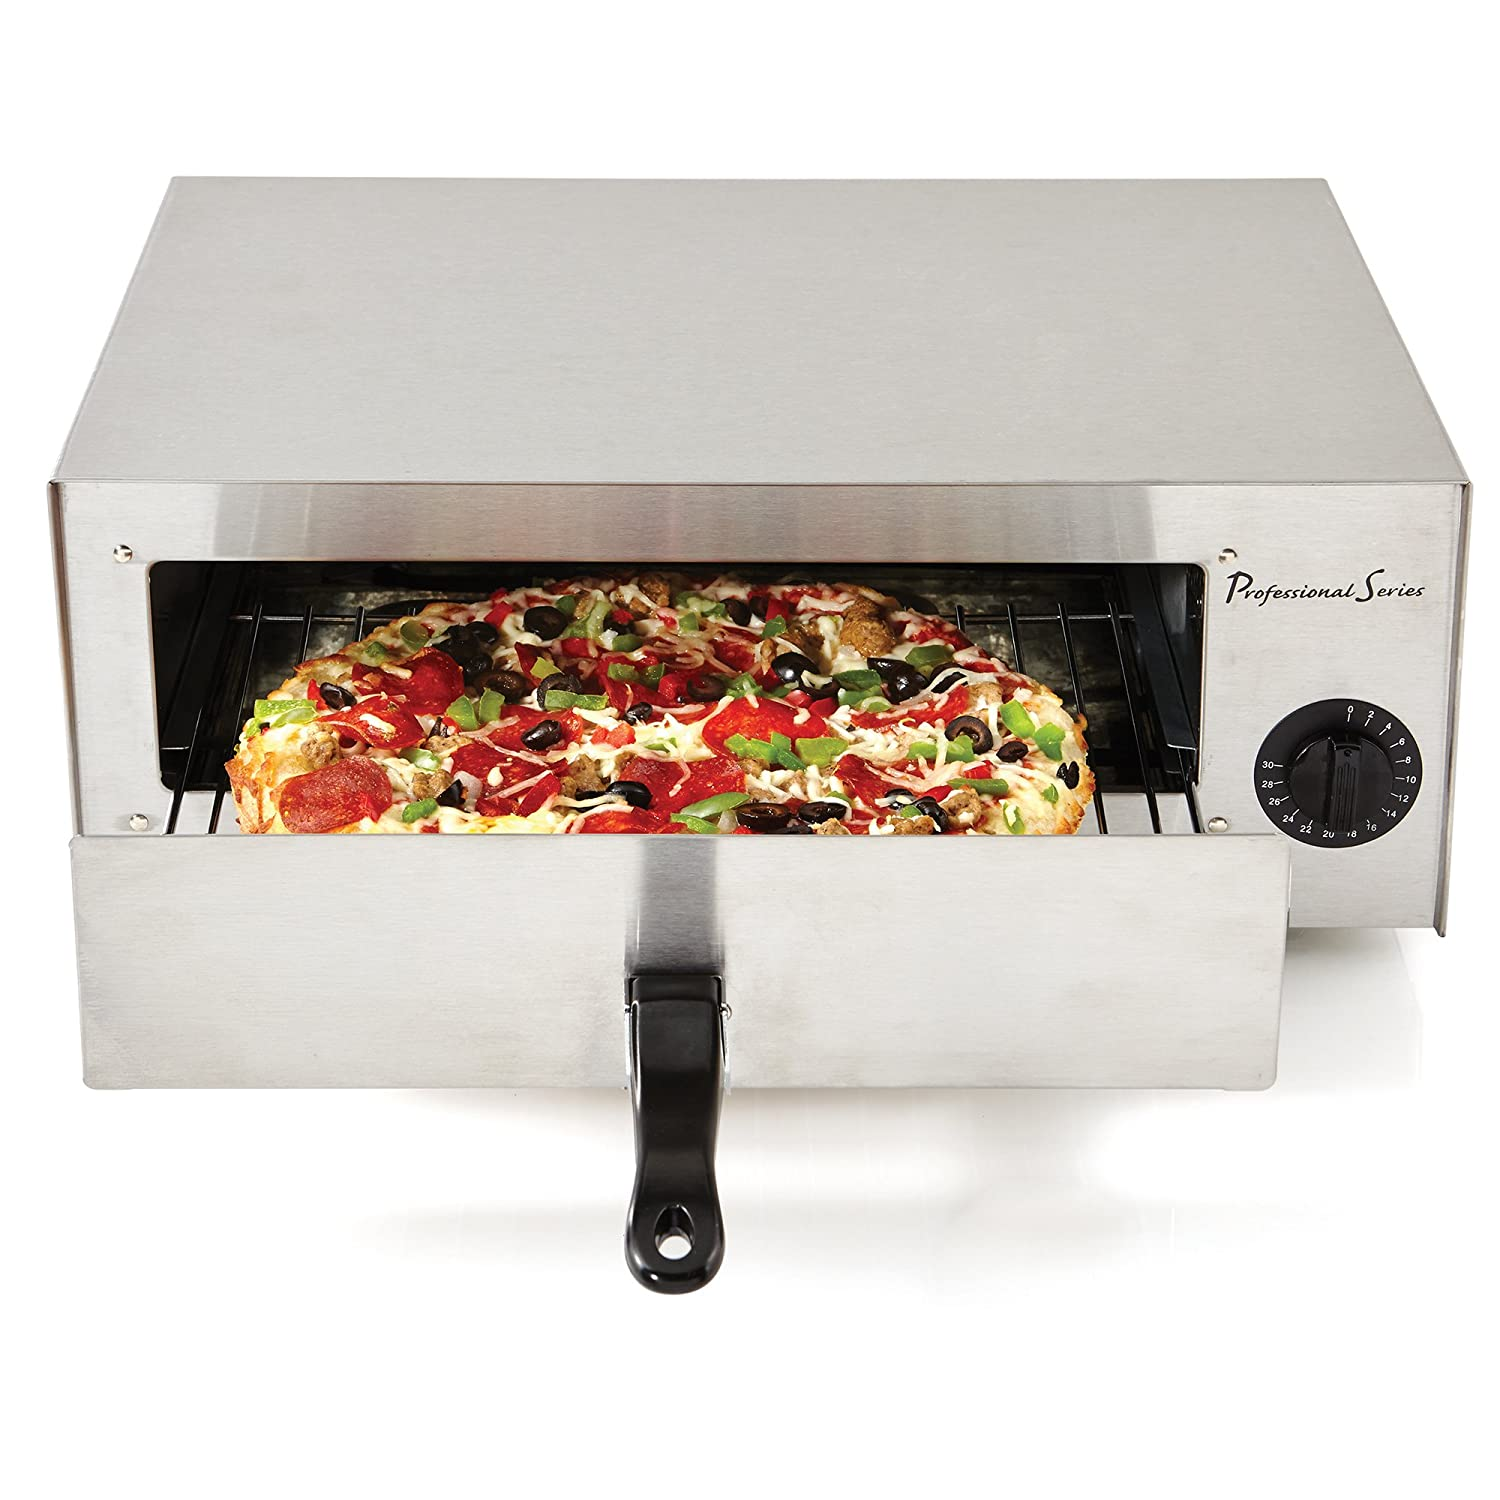 Professional Series PS75891 Stainless-Steel Pizza Baker